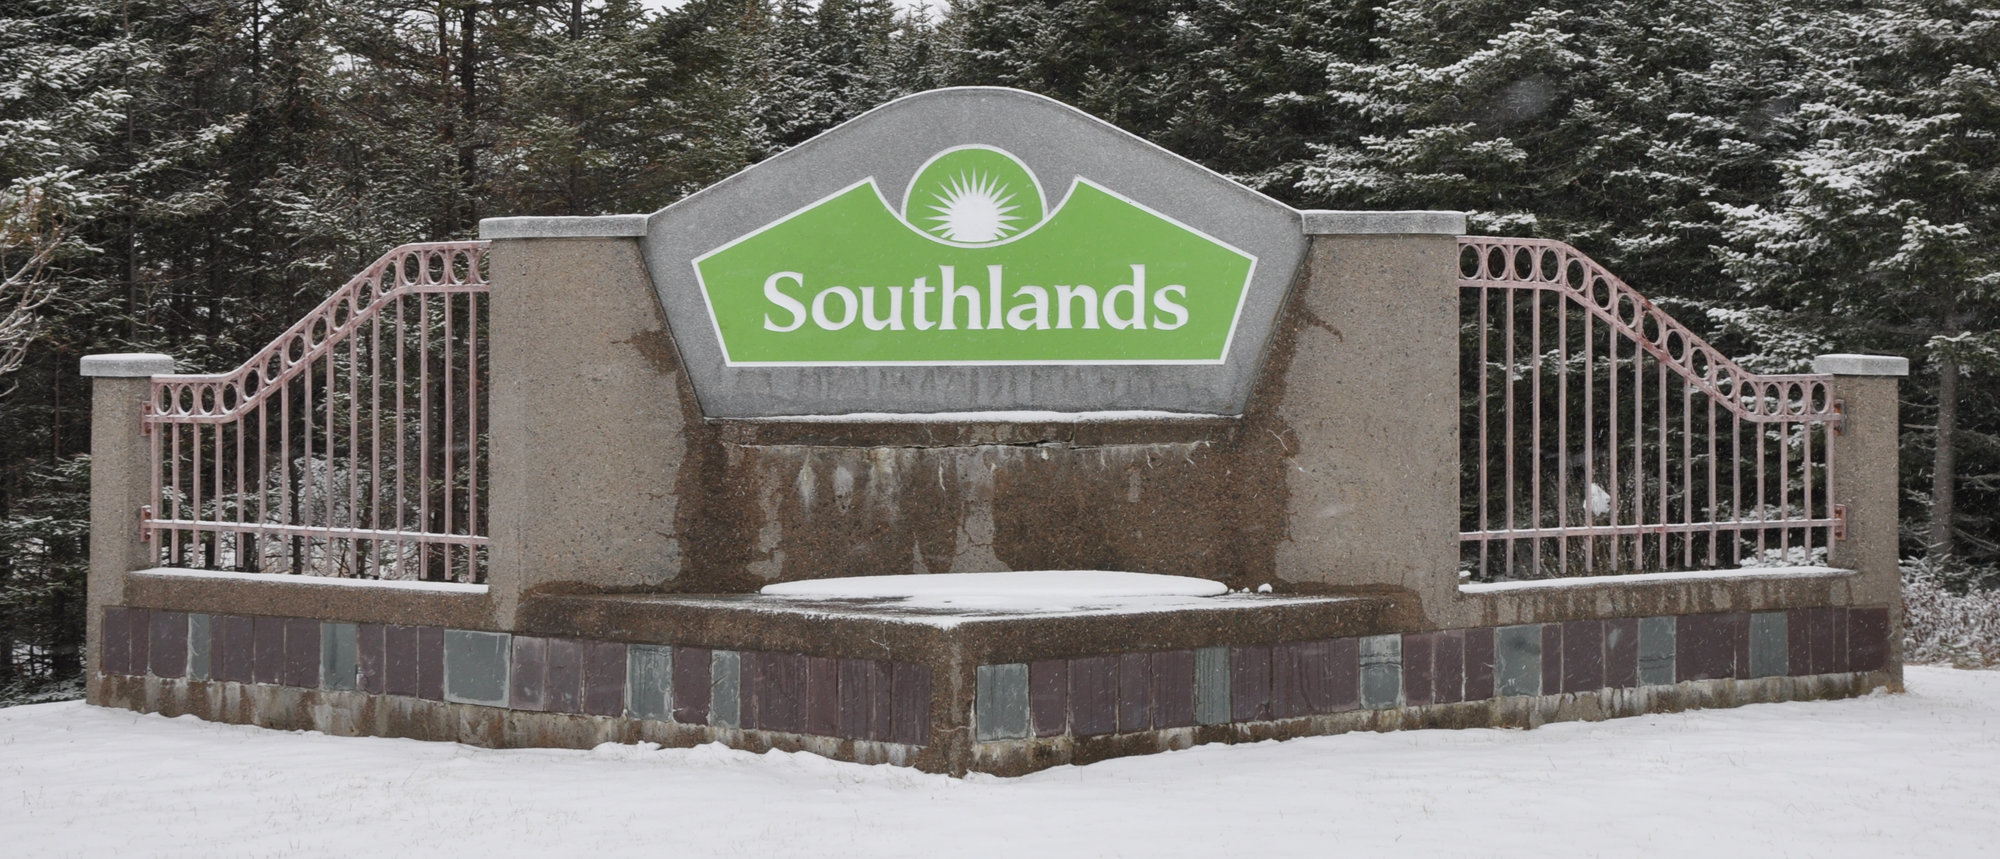 Homes for sale in Southlands